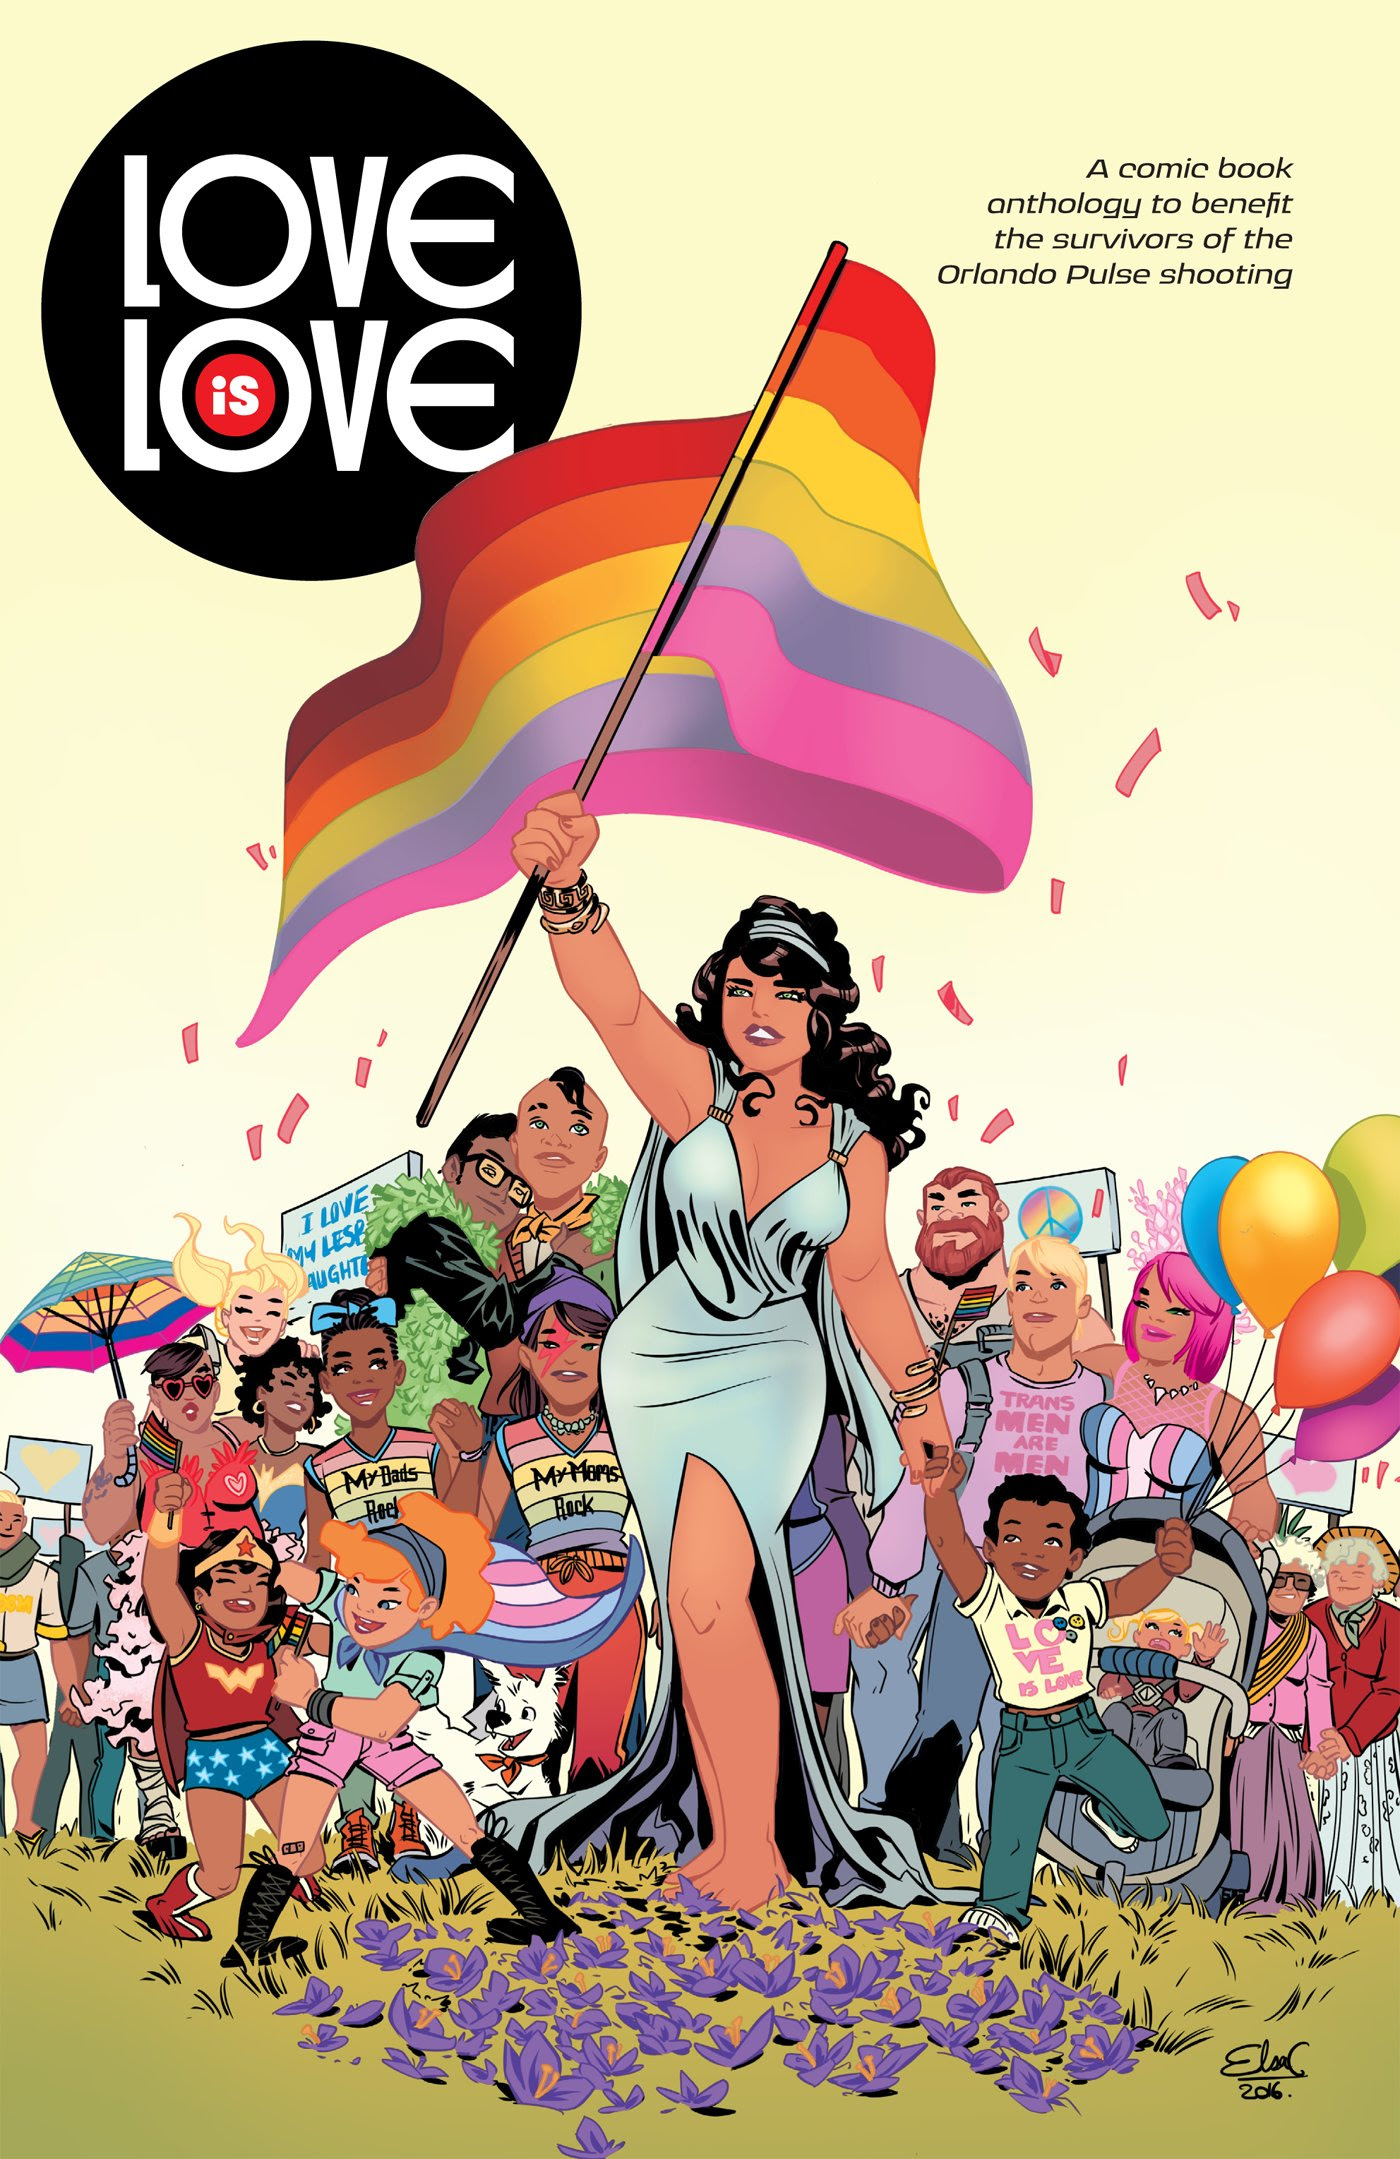 Love Is Love Benefit Comic Raises More Than $165K For Victims Of The Pulse Nightclub Massacre